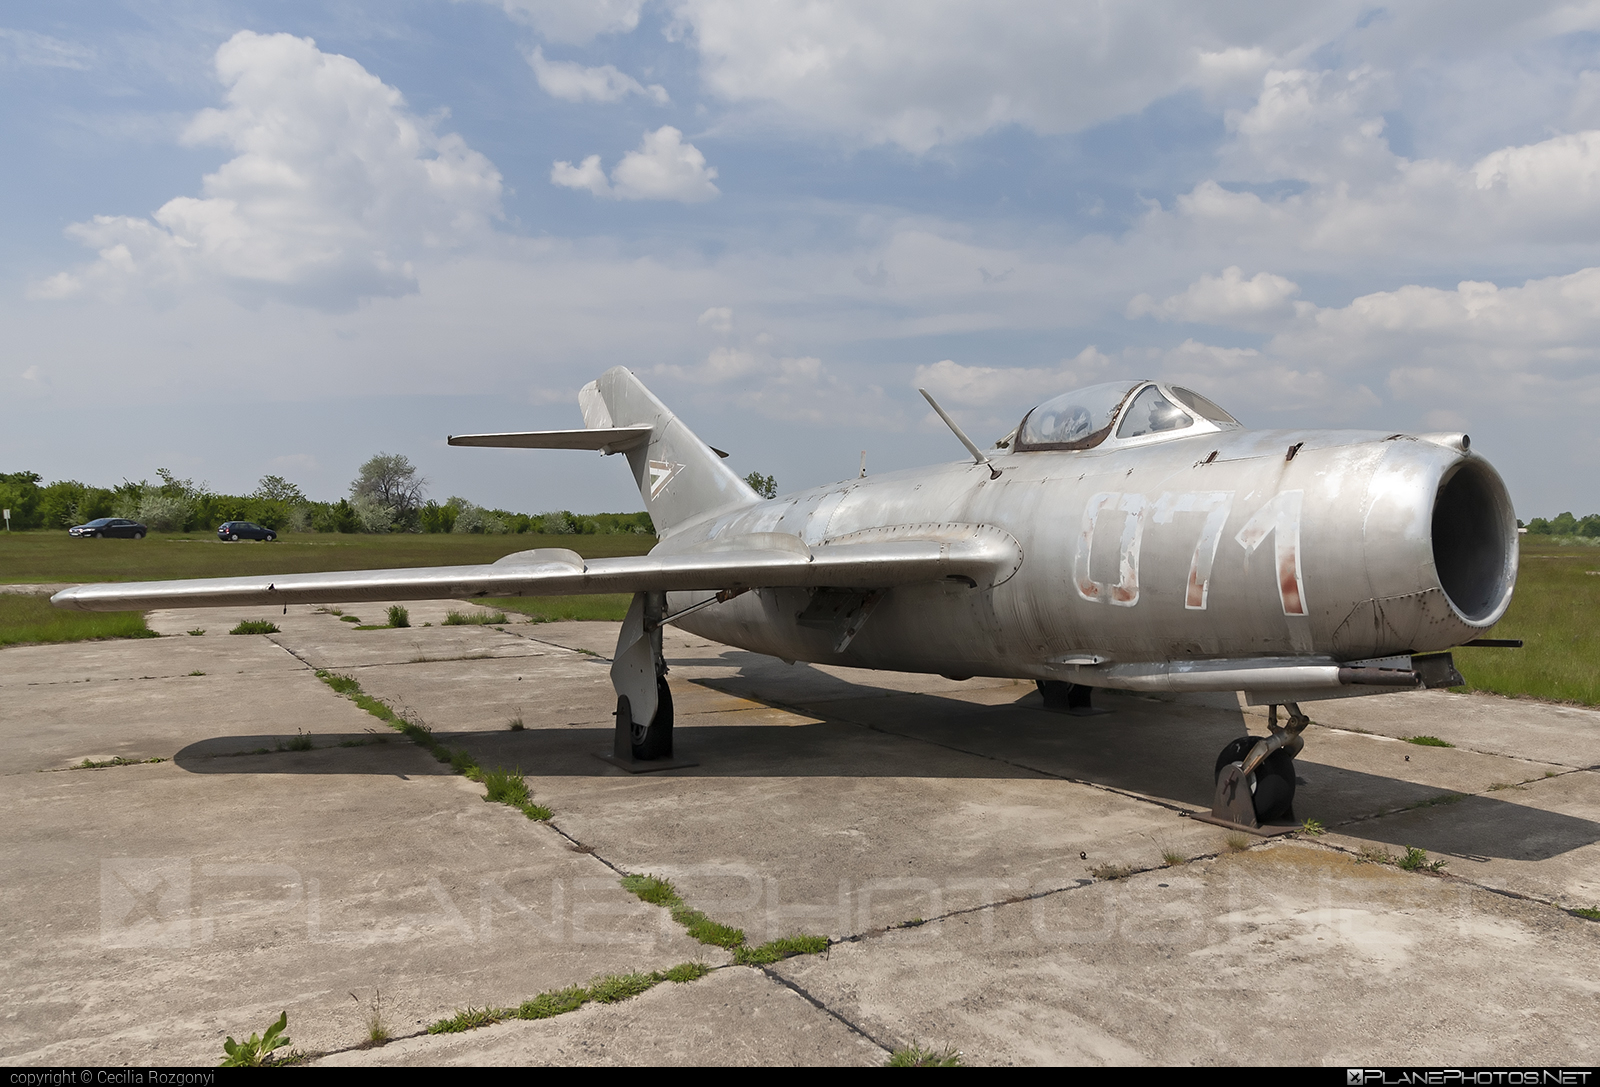 Mikoyan-Gurevich MiG-15bis - 071 operated by Magyar Néphadsereg (Hungarian People's Army) #hungarianpeoplesarmy #magyarnephadsereg #mig #mig15 #mig15bis #mikoyangurevich